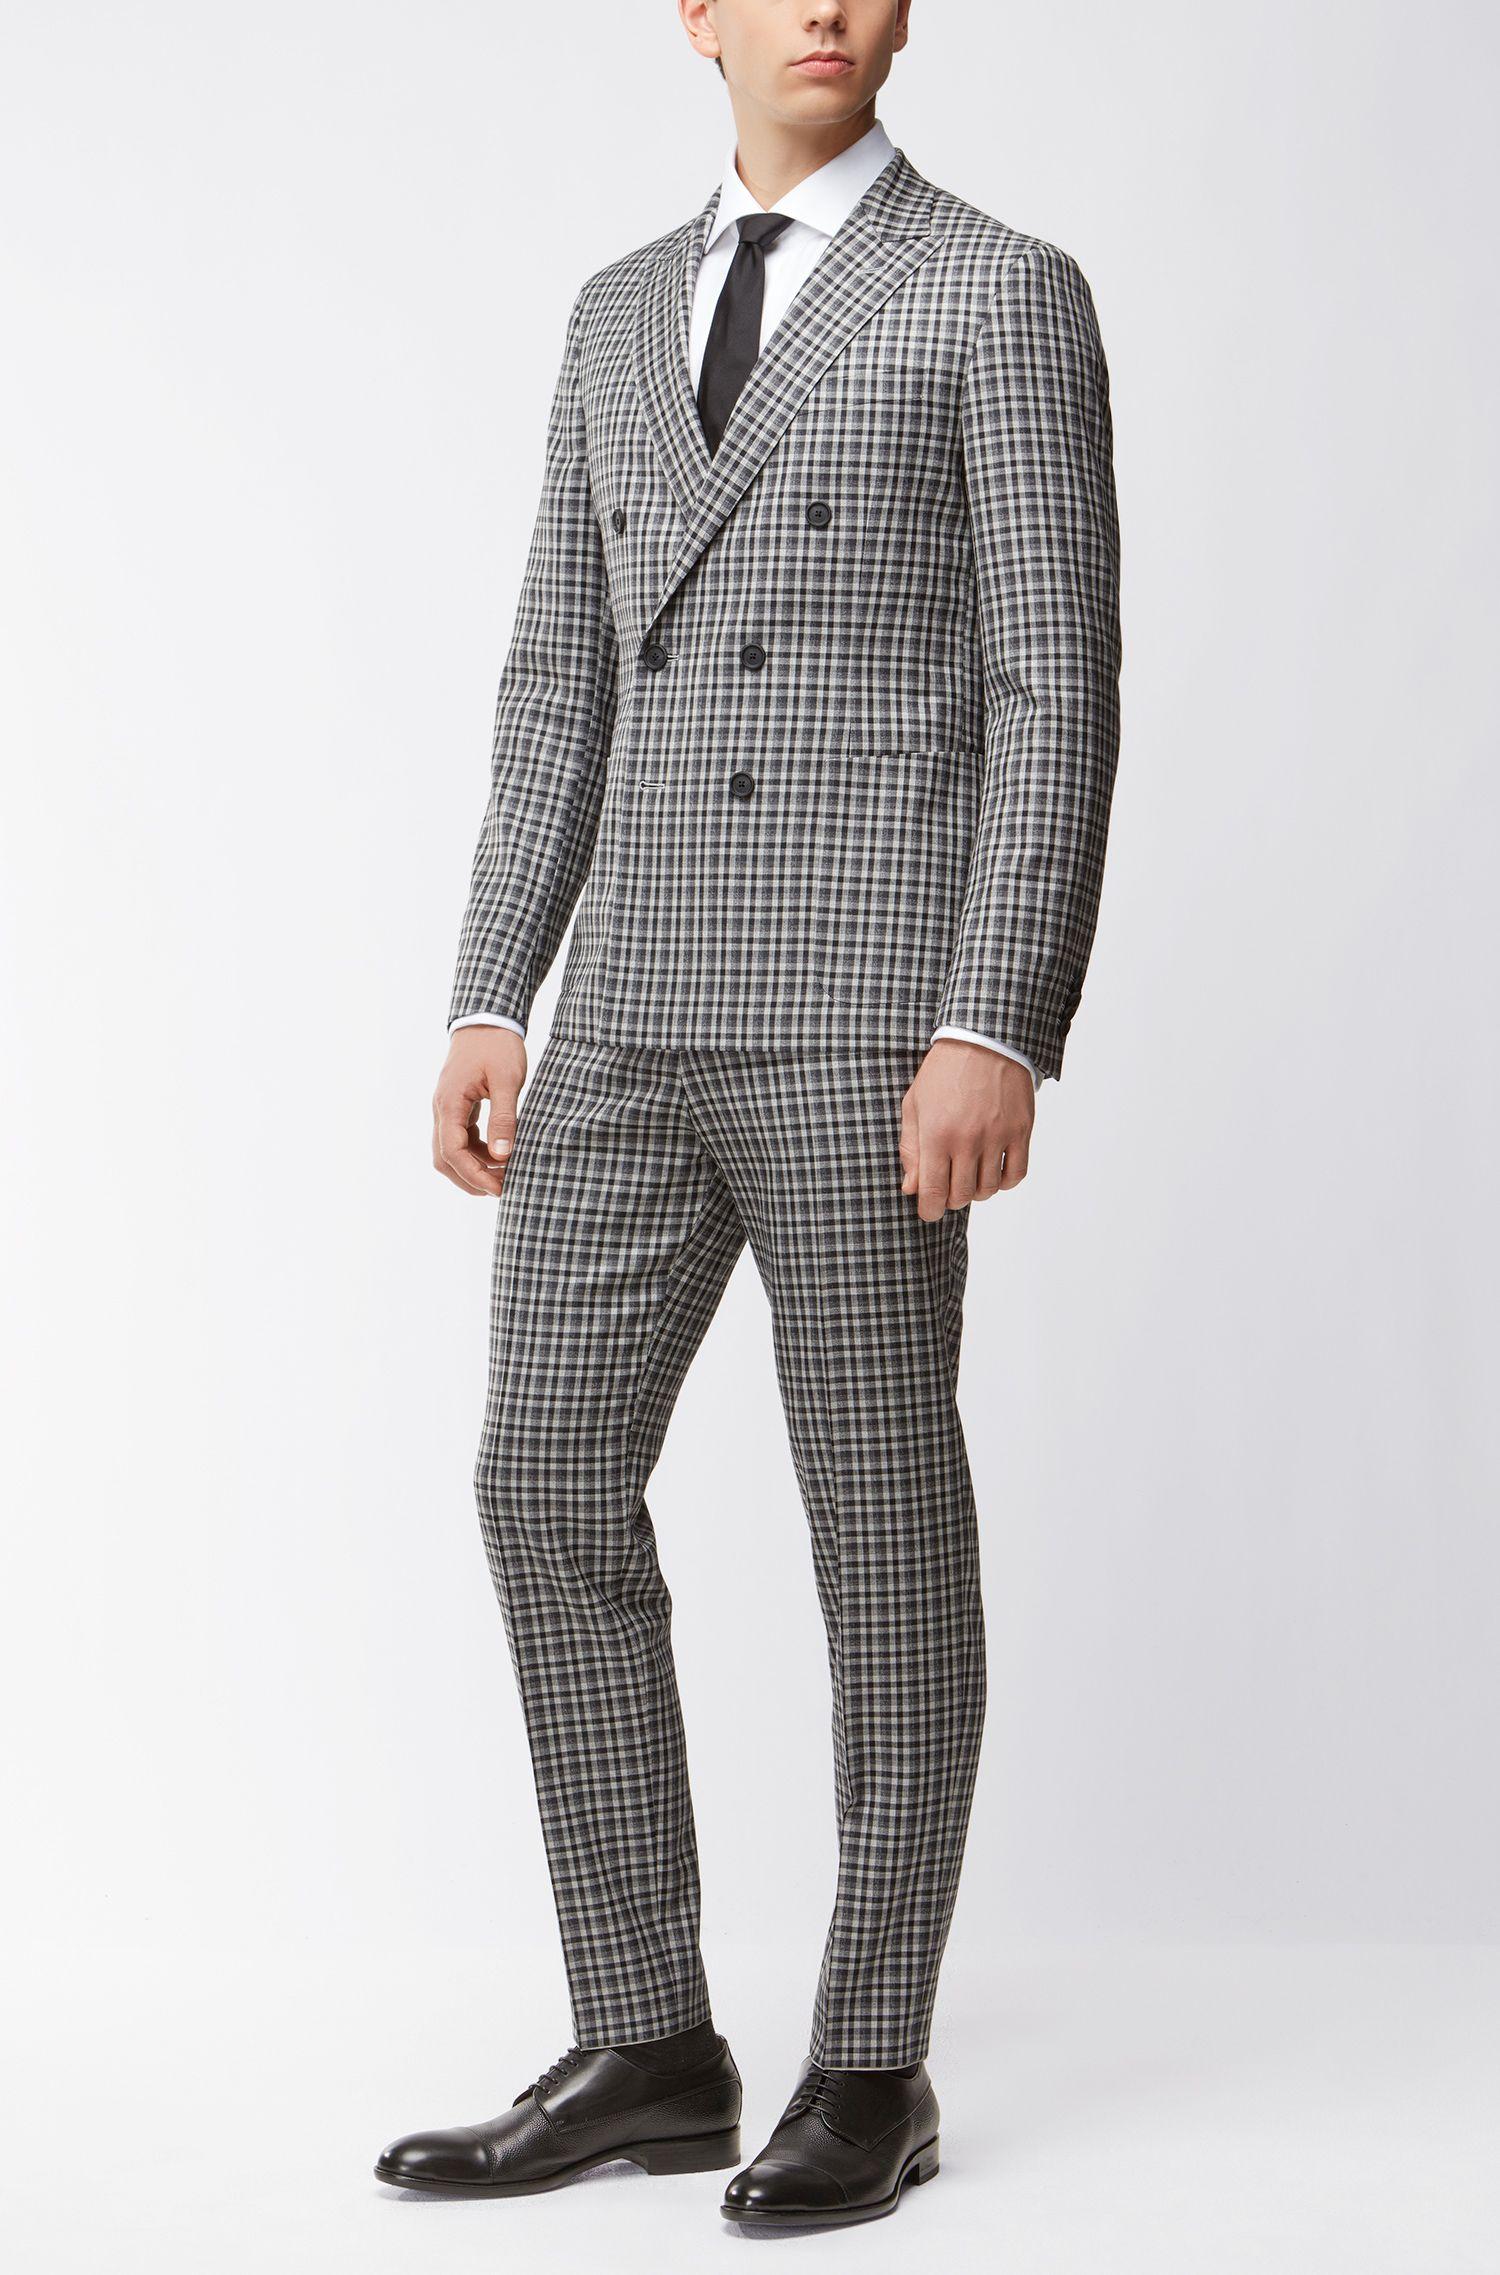 Checked Wool Double-Breasted Sport Coat, Slim Fit | Nayler J, Grey